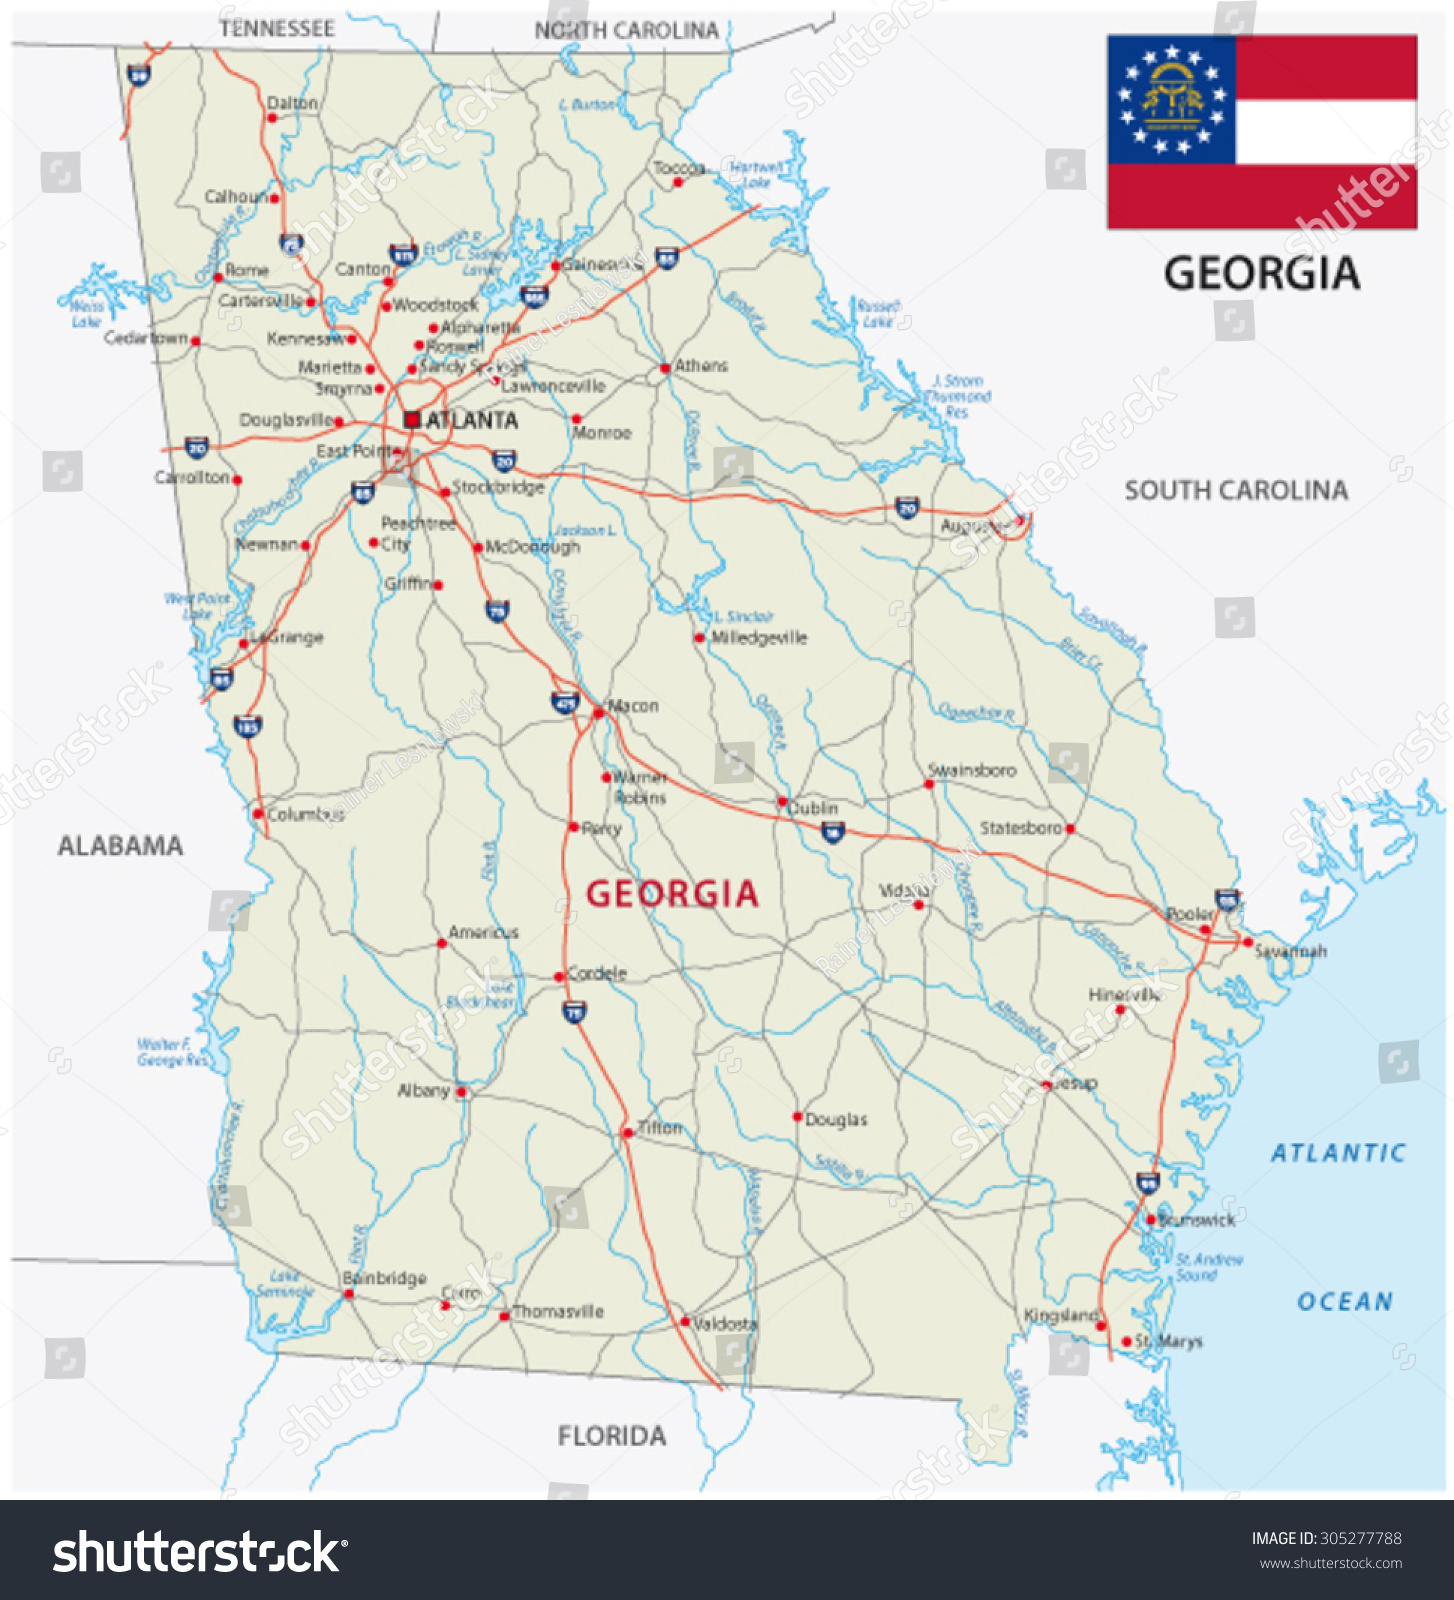 Georgia Road Map Flag Stock Vector Shutterstock - Map of georgia roads